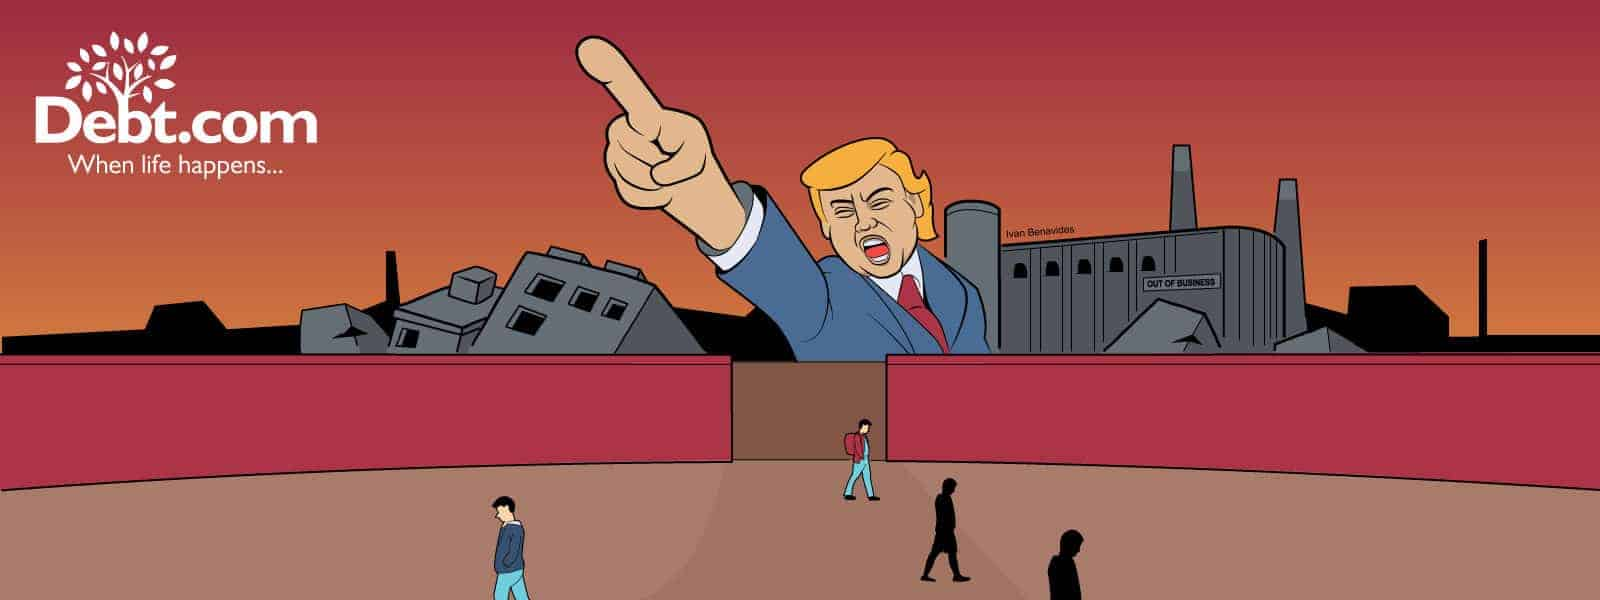 Donald Trump yells at immigrants to go away and stop stealing our jobs against a foreground of shuttered factories in a Soviet-style illustration